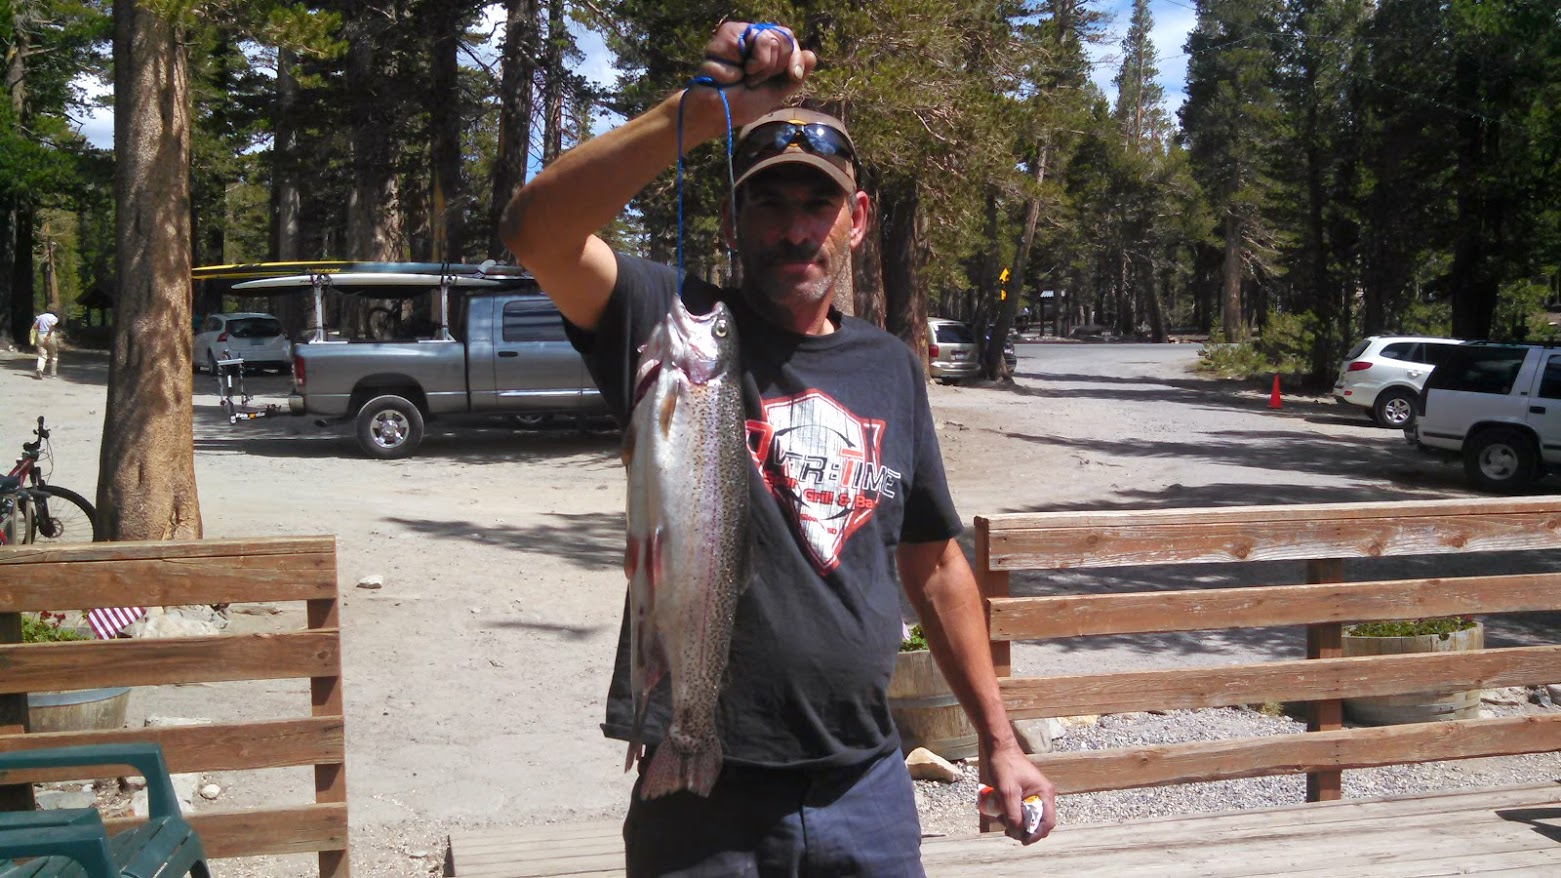 Mammoth lakes to stock most fish in california 100 000 for Oklahoma fishing license age